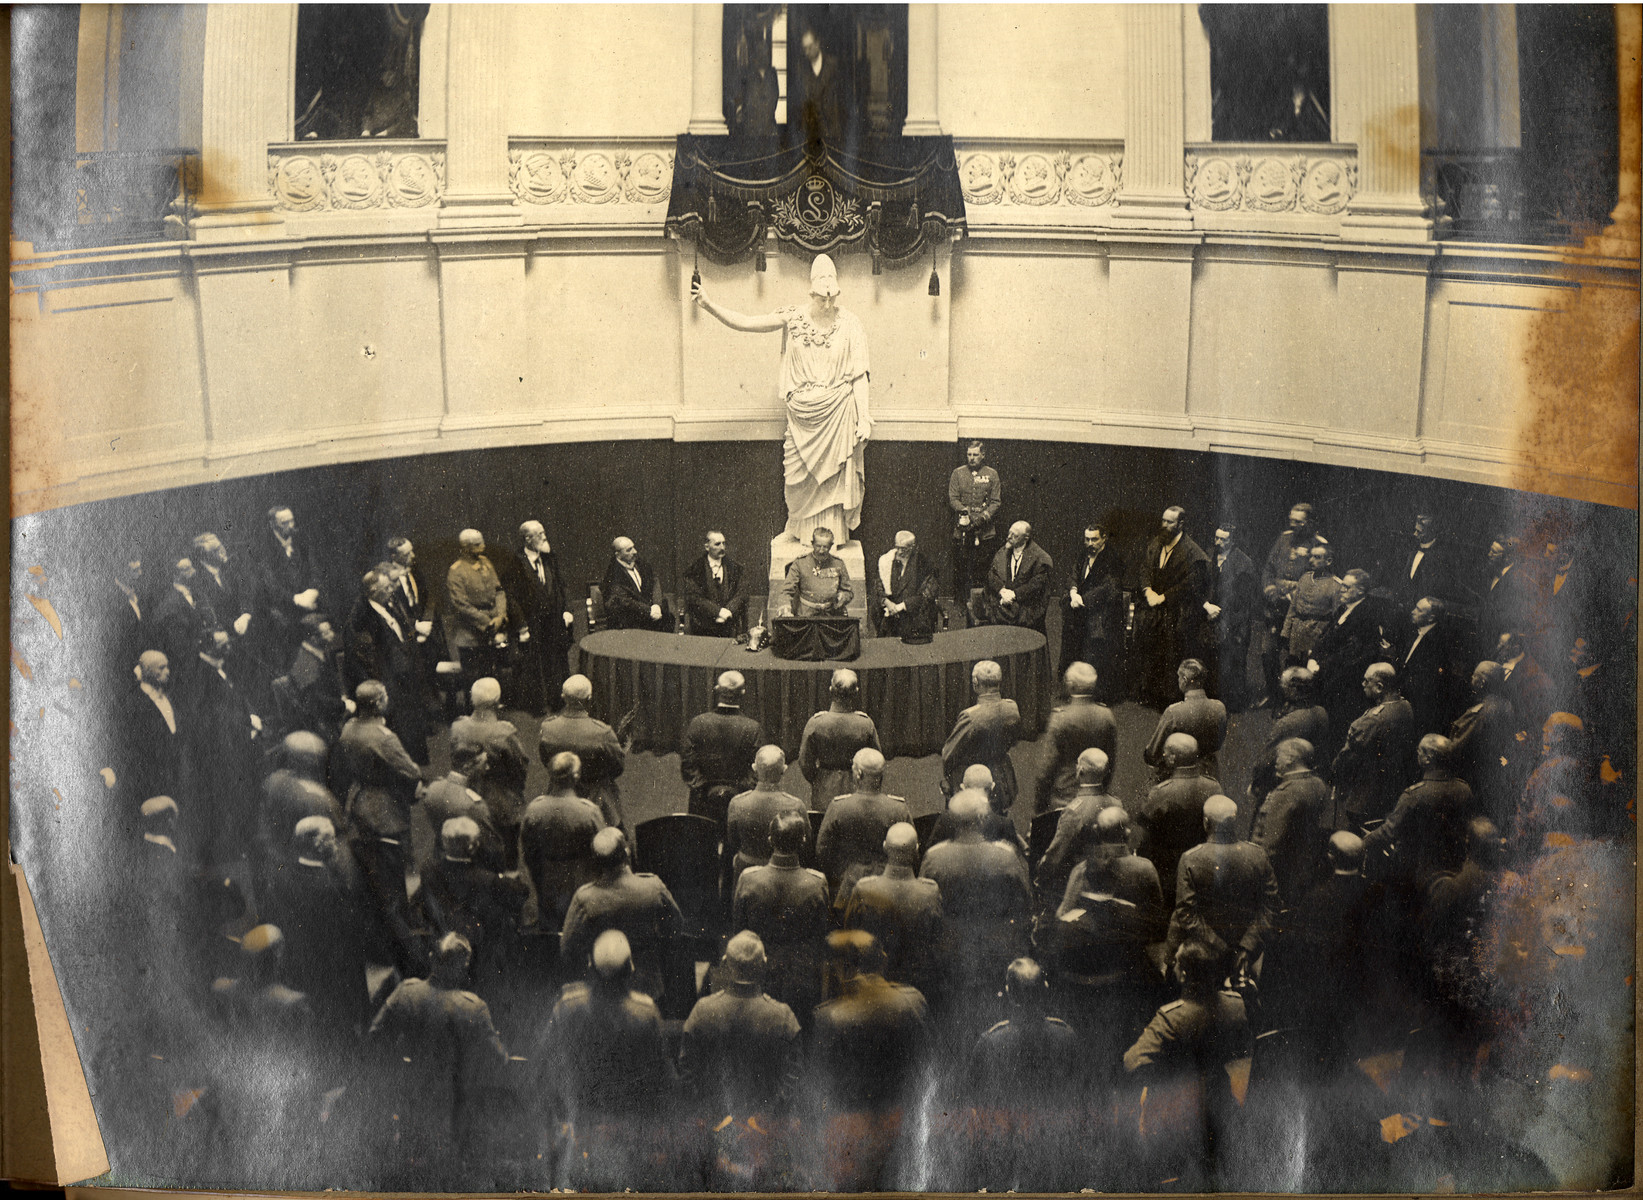 General von Bissing, the Governor General of German occupied Belgium, is photographed at center during a ceremony at the newly founded von Bissing University in Ghent.